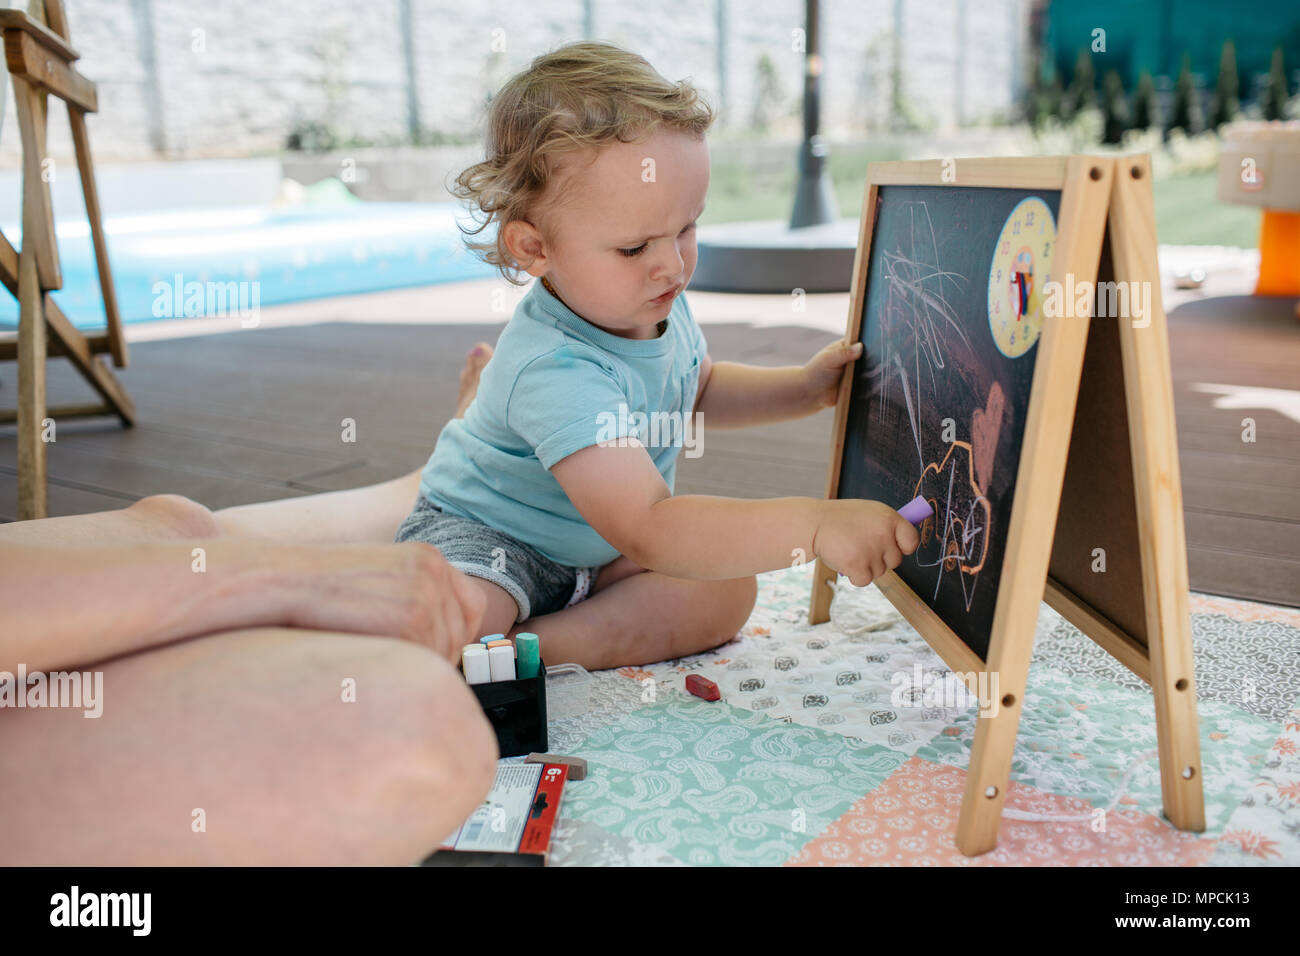 A toddler enjoying himself drawing on a chalkboard. A little boy scribbling with a chalk on a chalkboard. - Stock Image